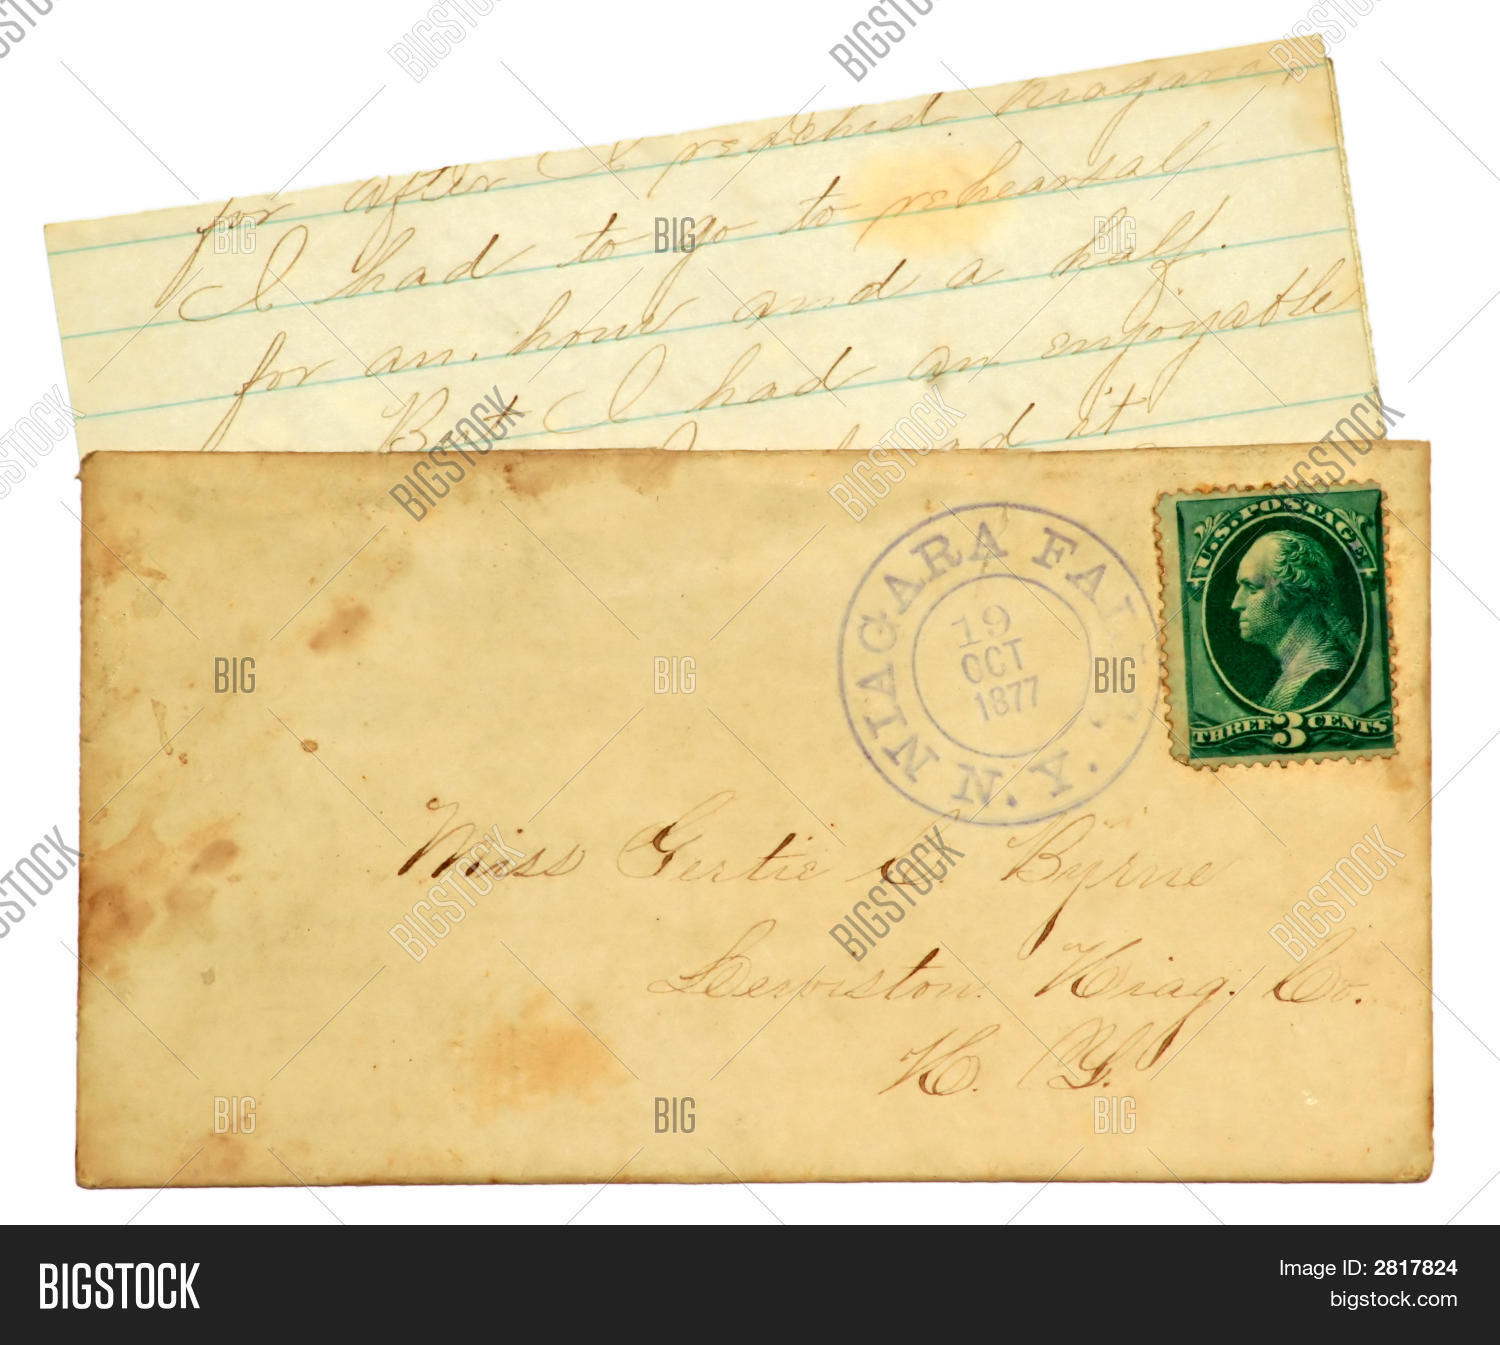 old letter envelope image photo free trial bigstock